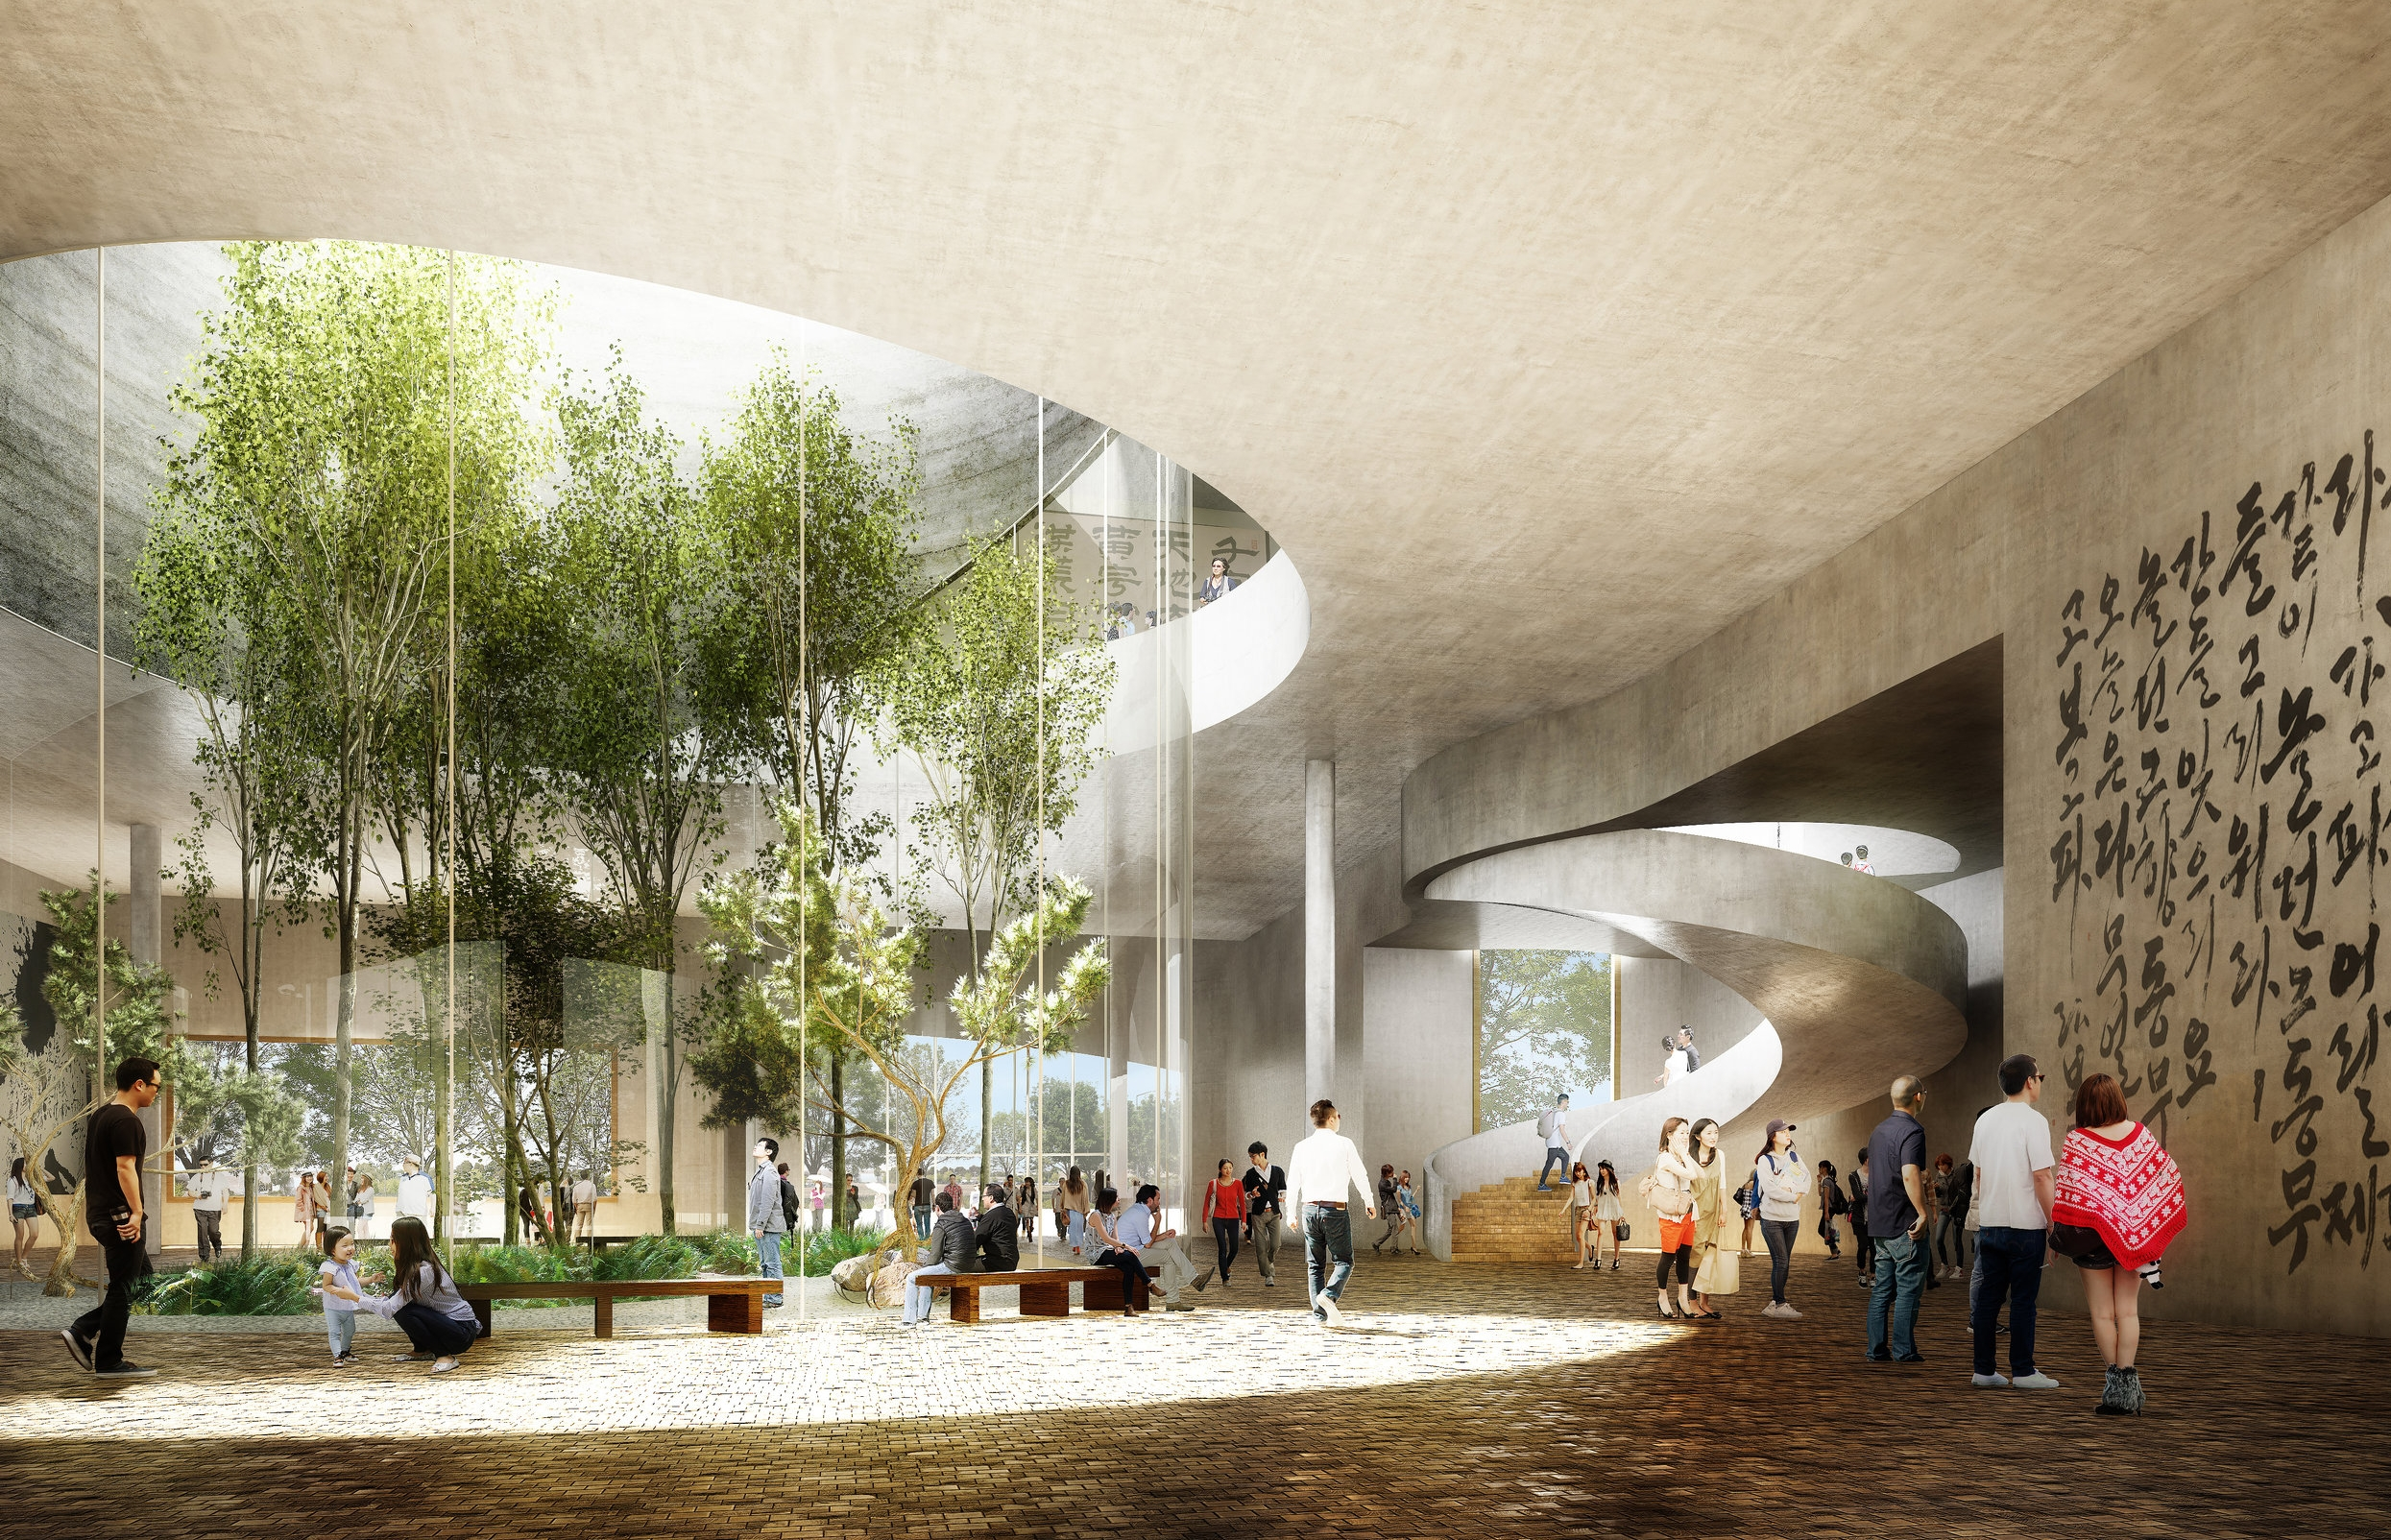 Ground Floor Hall and Central Courtyard  - View from breakout space; Image:  Nephew